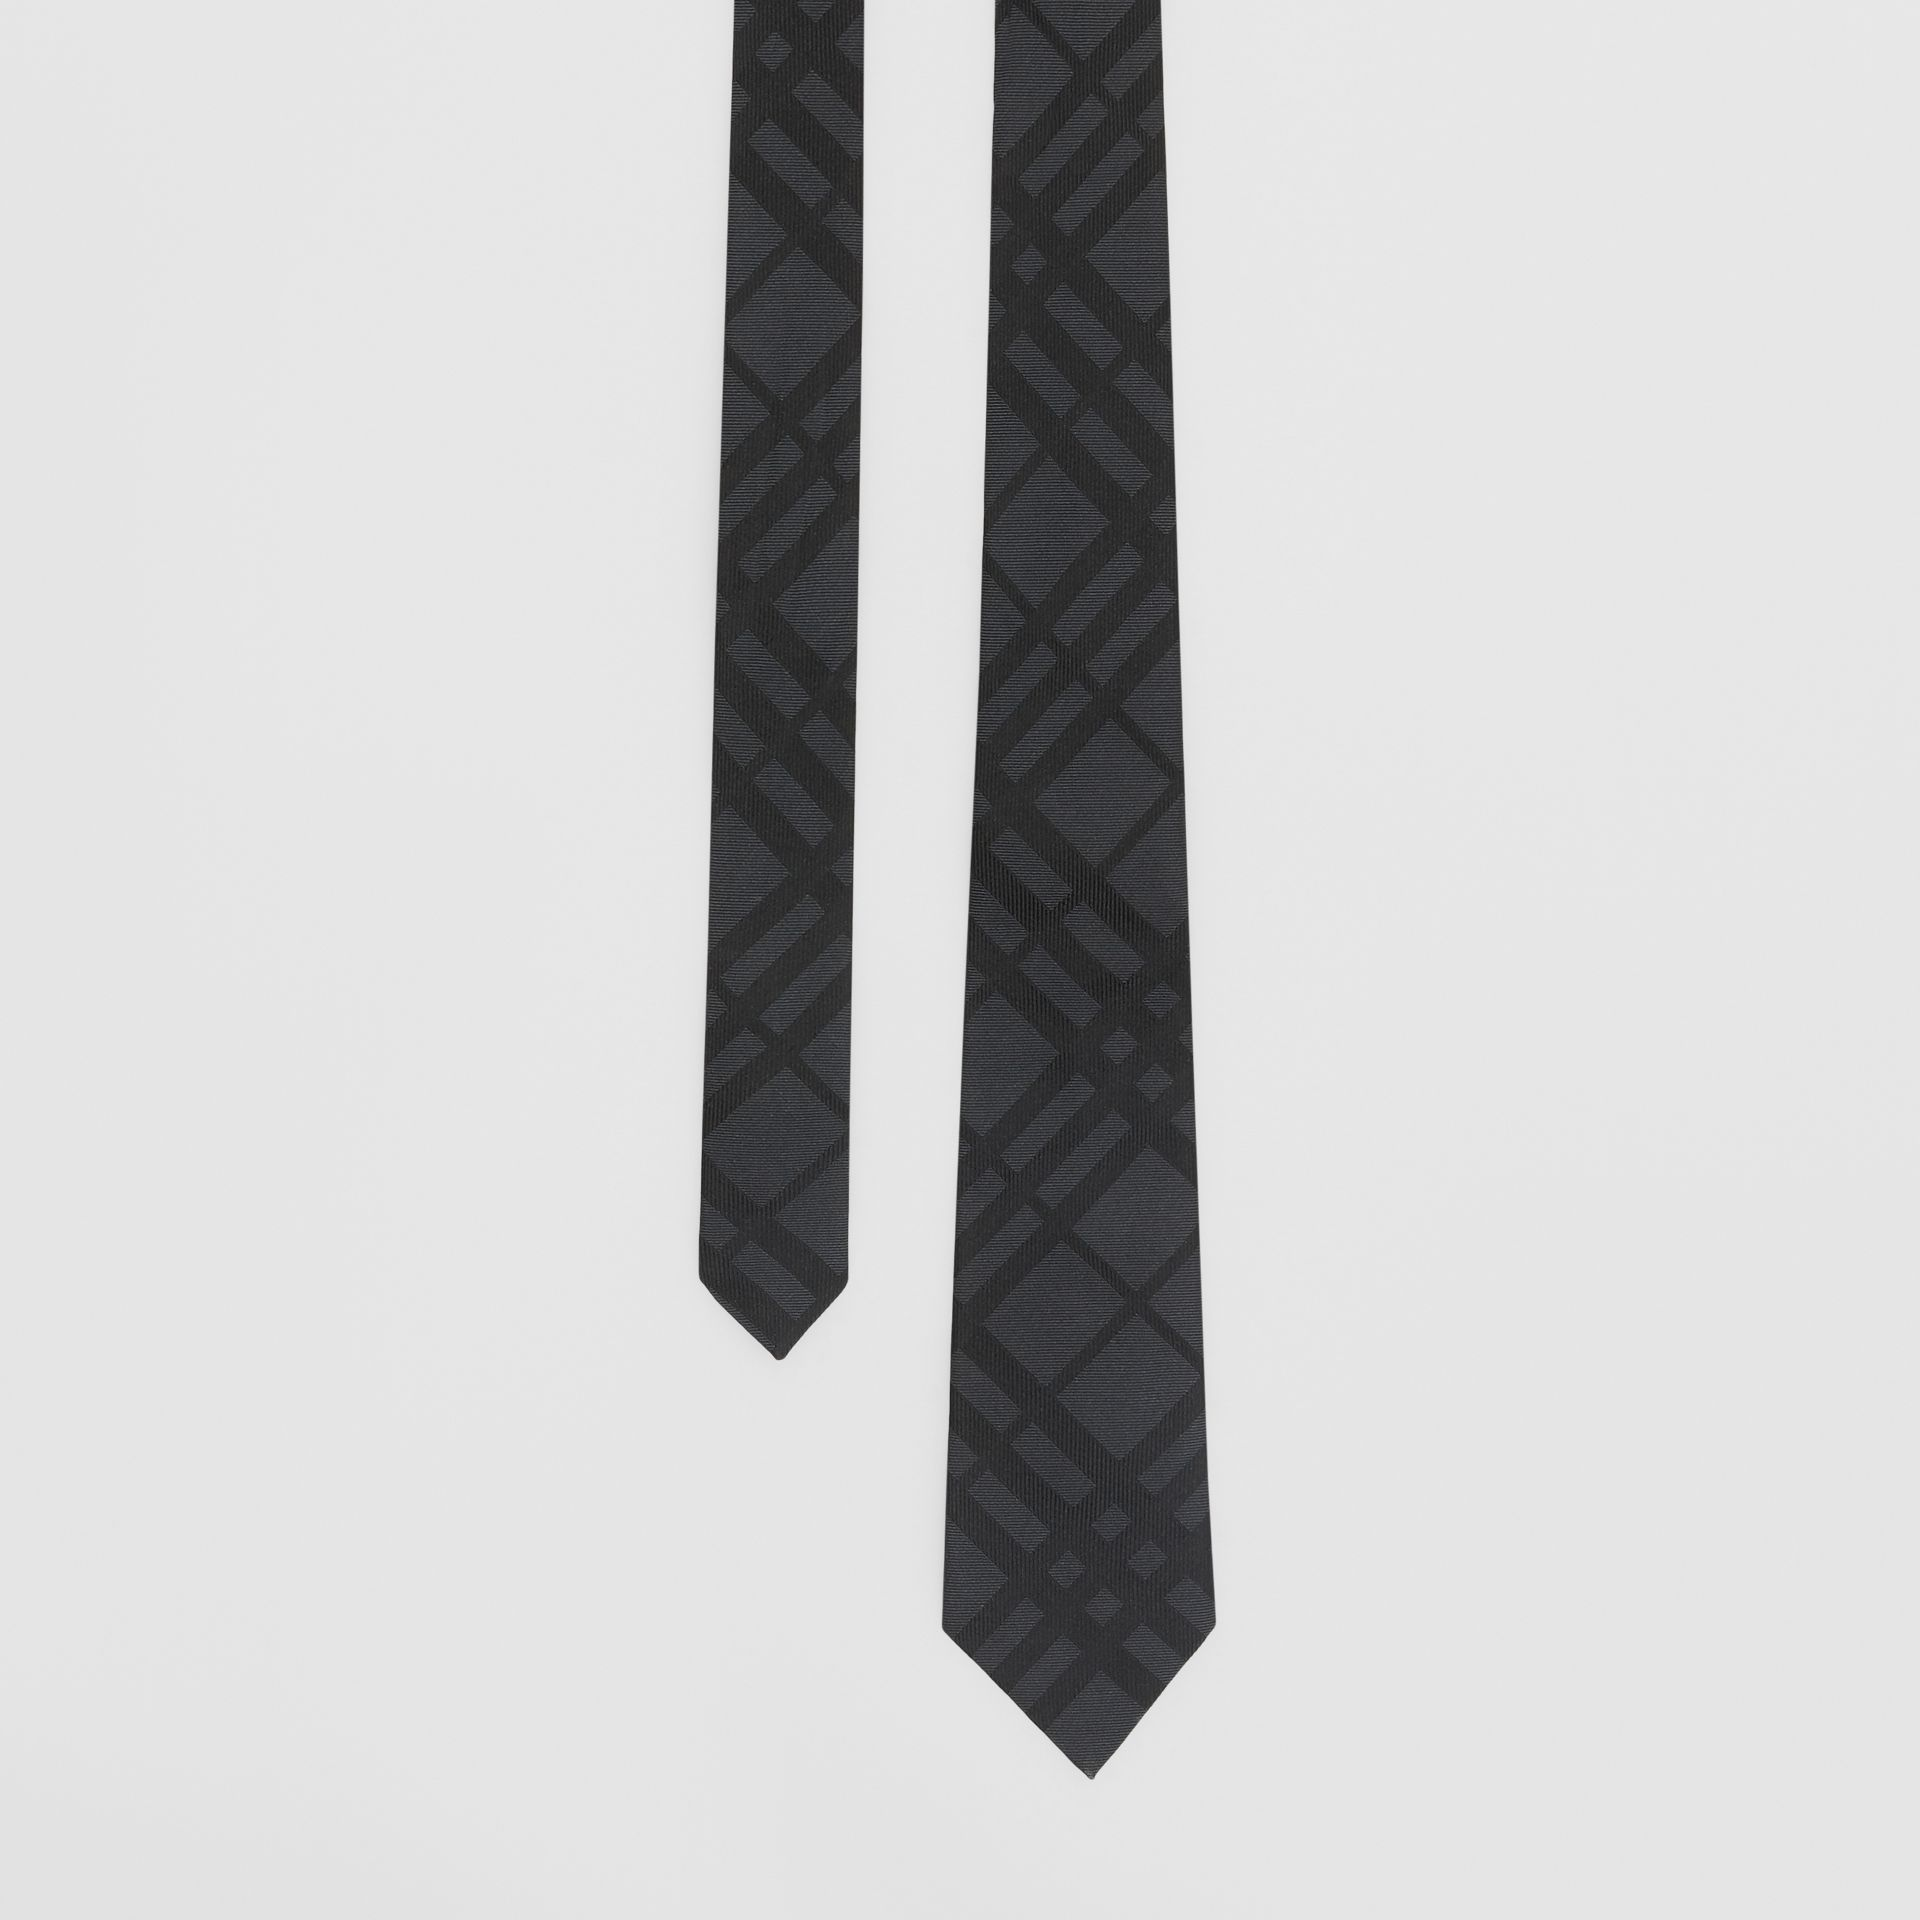 Classic Cut Check Silk Jacquard Tie in Charcoal - Men | Burberry - gallery image 0